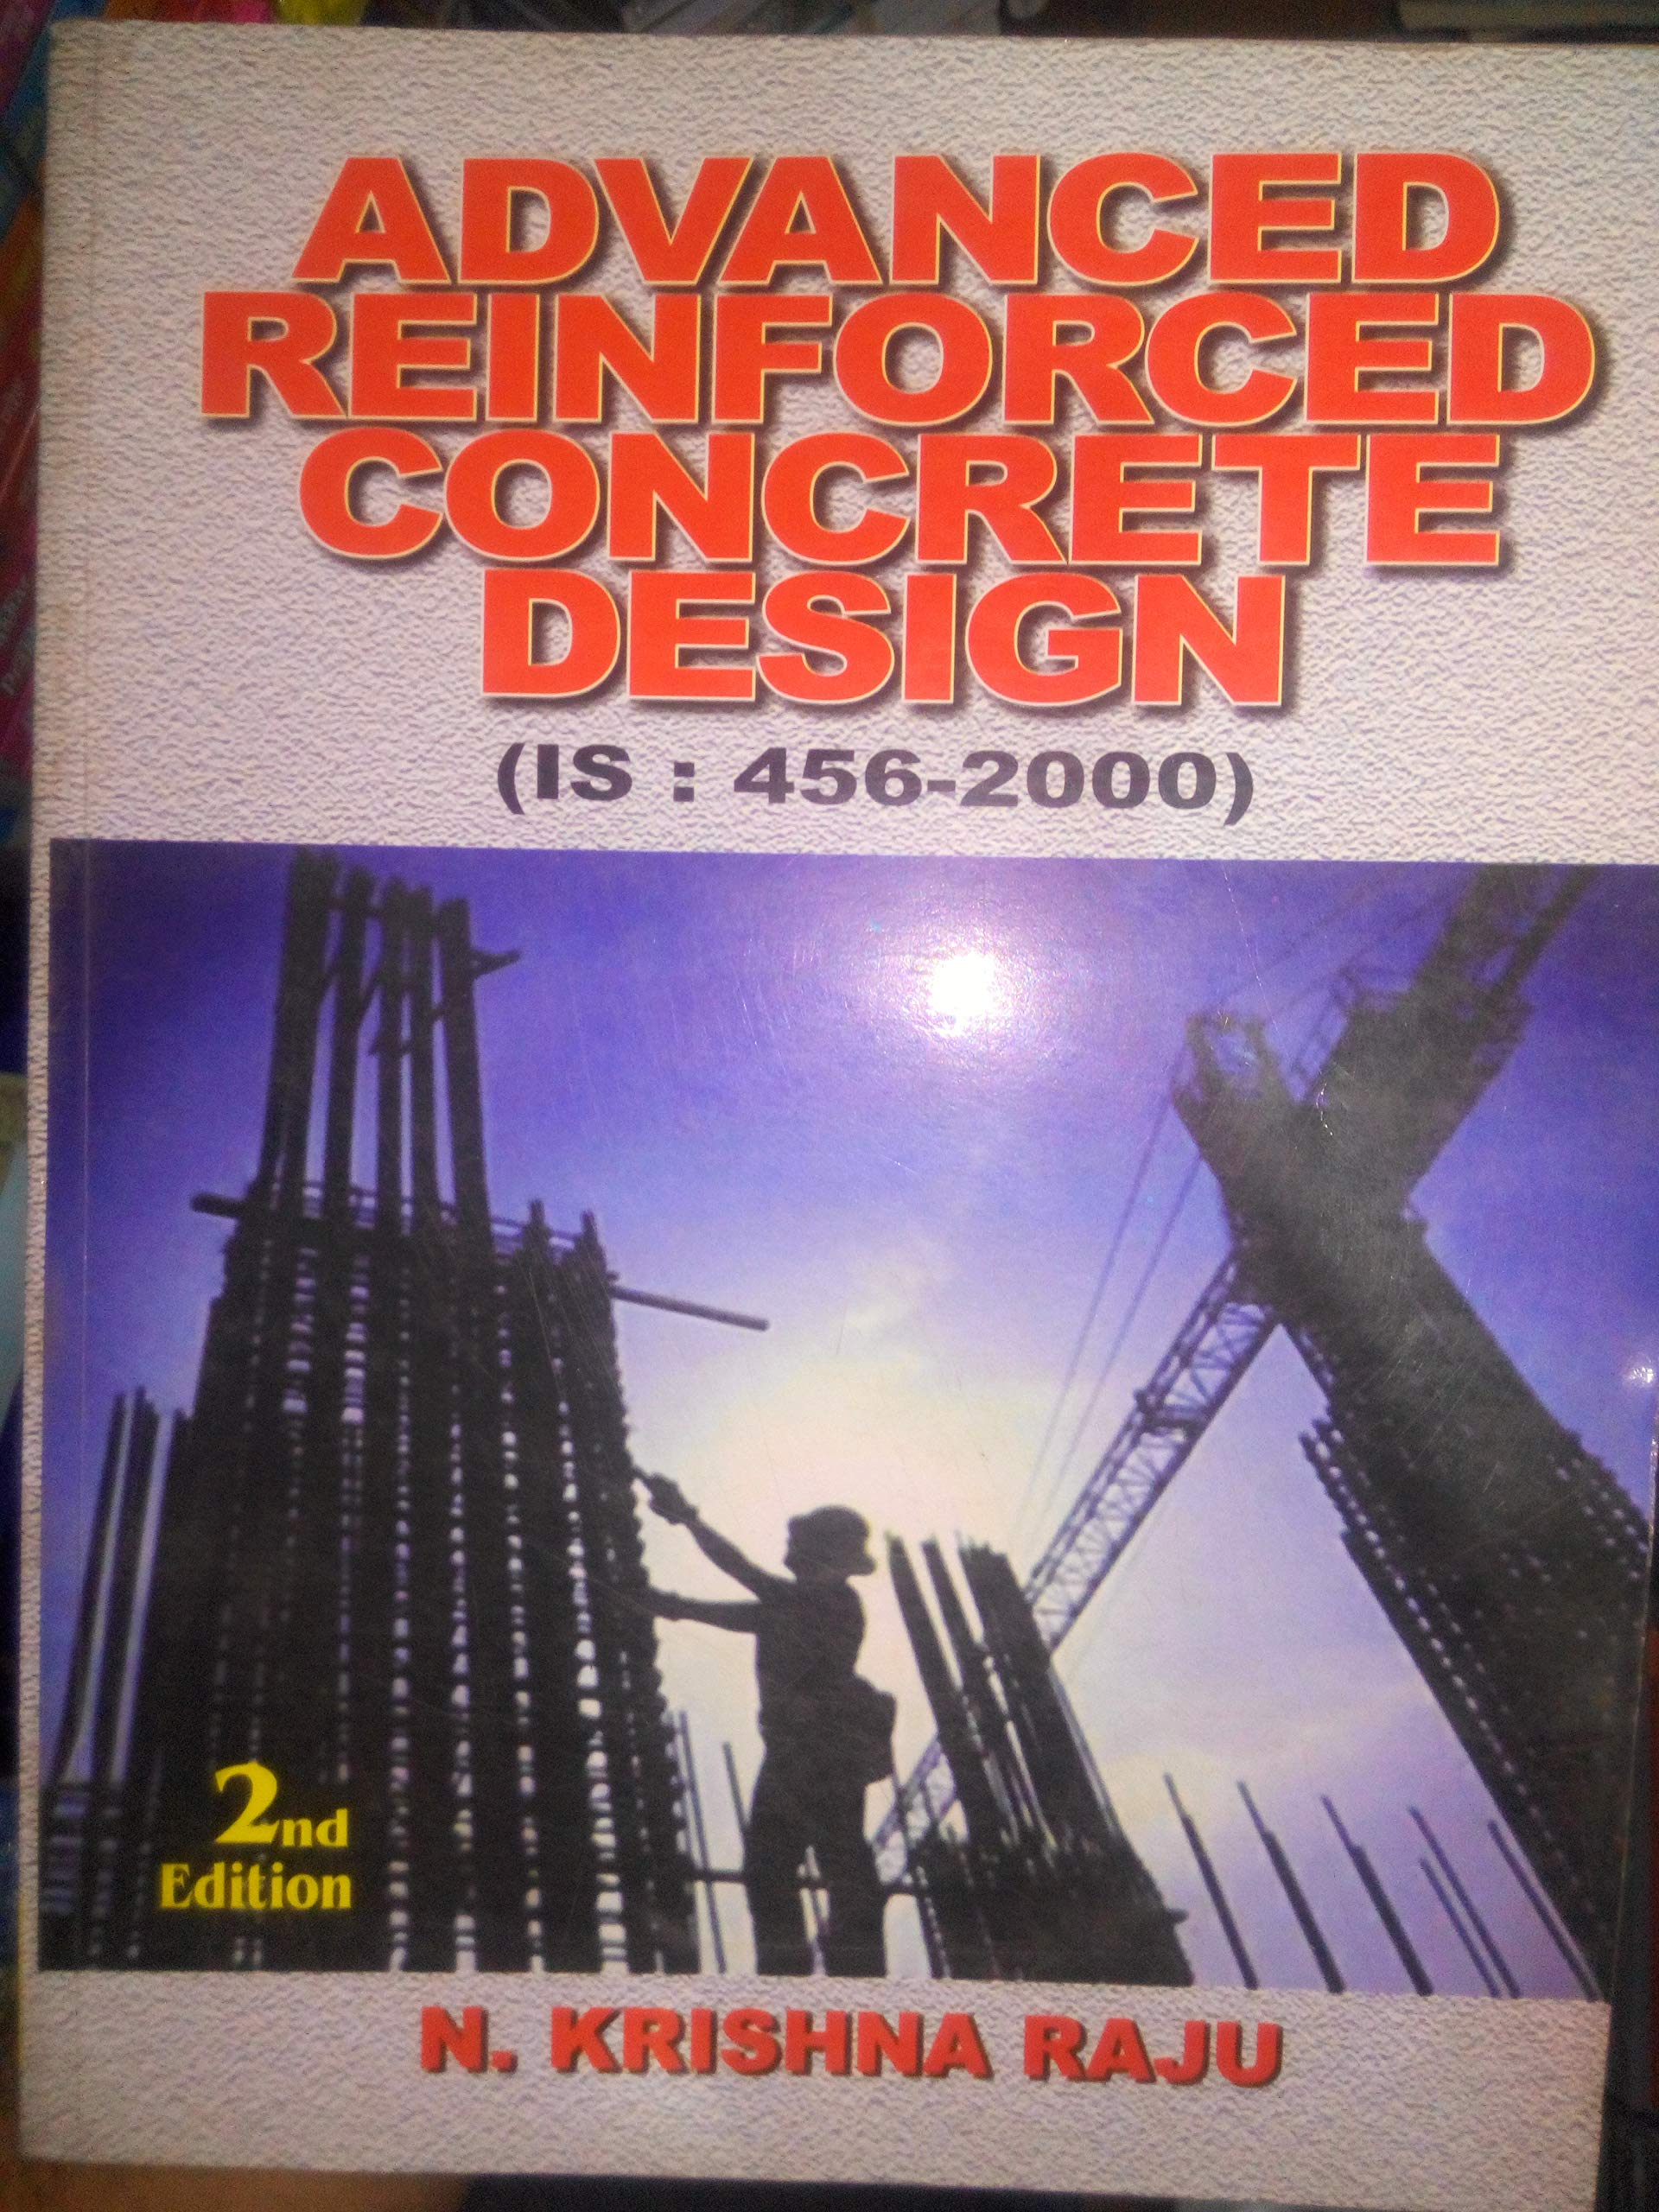 Amazon.in: Buy Advanced Reinforced Concrete Design Book Online at Low  Prices in India | Advanced Reinforced Concrete Design Reviews & Ratings